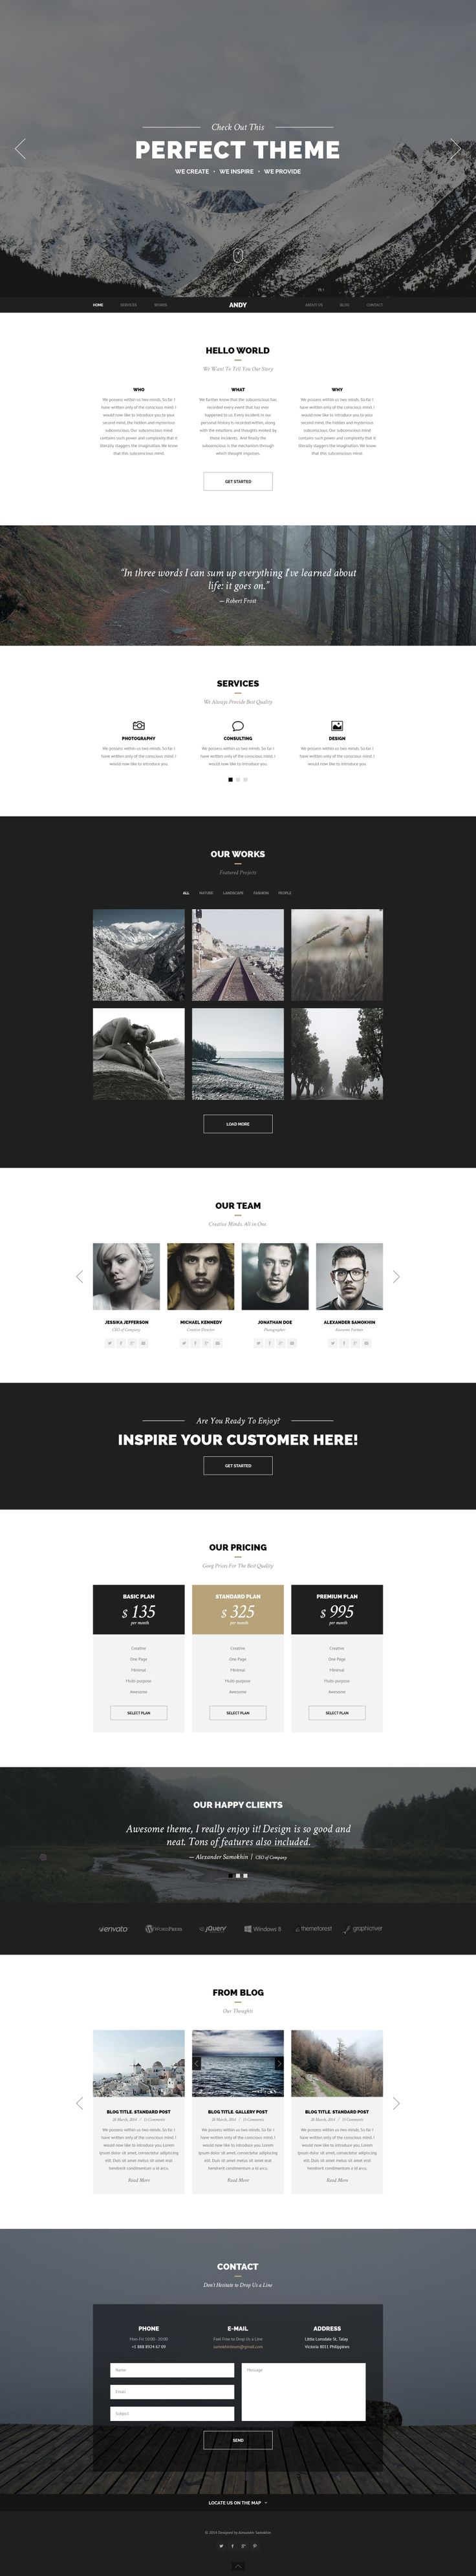 Andy is an elegant and stylish onepage PSD with a focus on clean, subtle design elements. Perfectly suits for photographers, freelancers, design agencies, creative persons and for landing pages as well. Andy packed with dark and light versions of the homepage, single work preview, blog page and shortcodes page.  http://themeforest.net/item/andy-elegant-creative-minimal-style-onepage-psd/7351873?ref=Toxicus